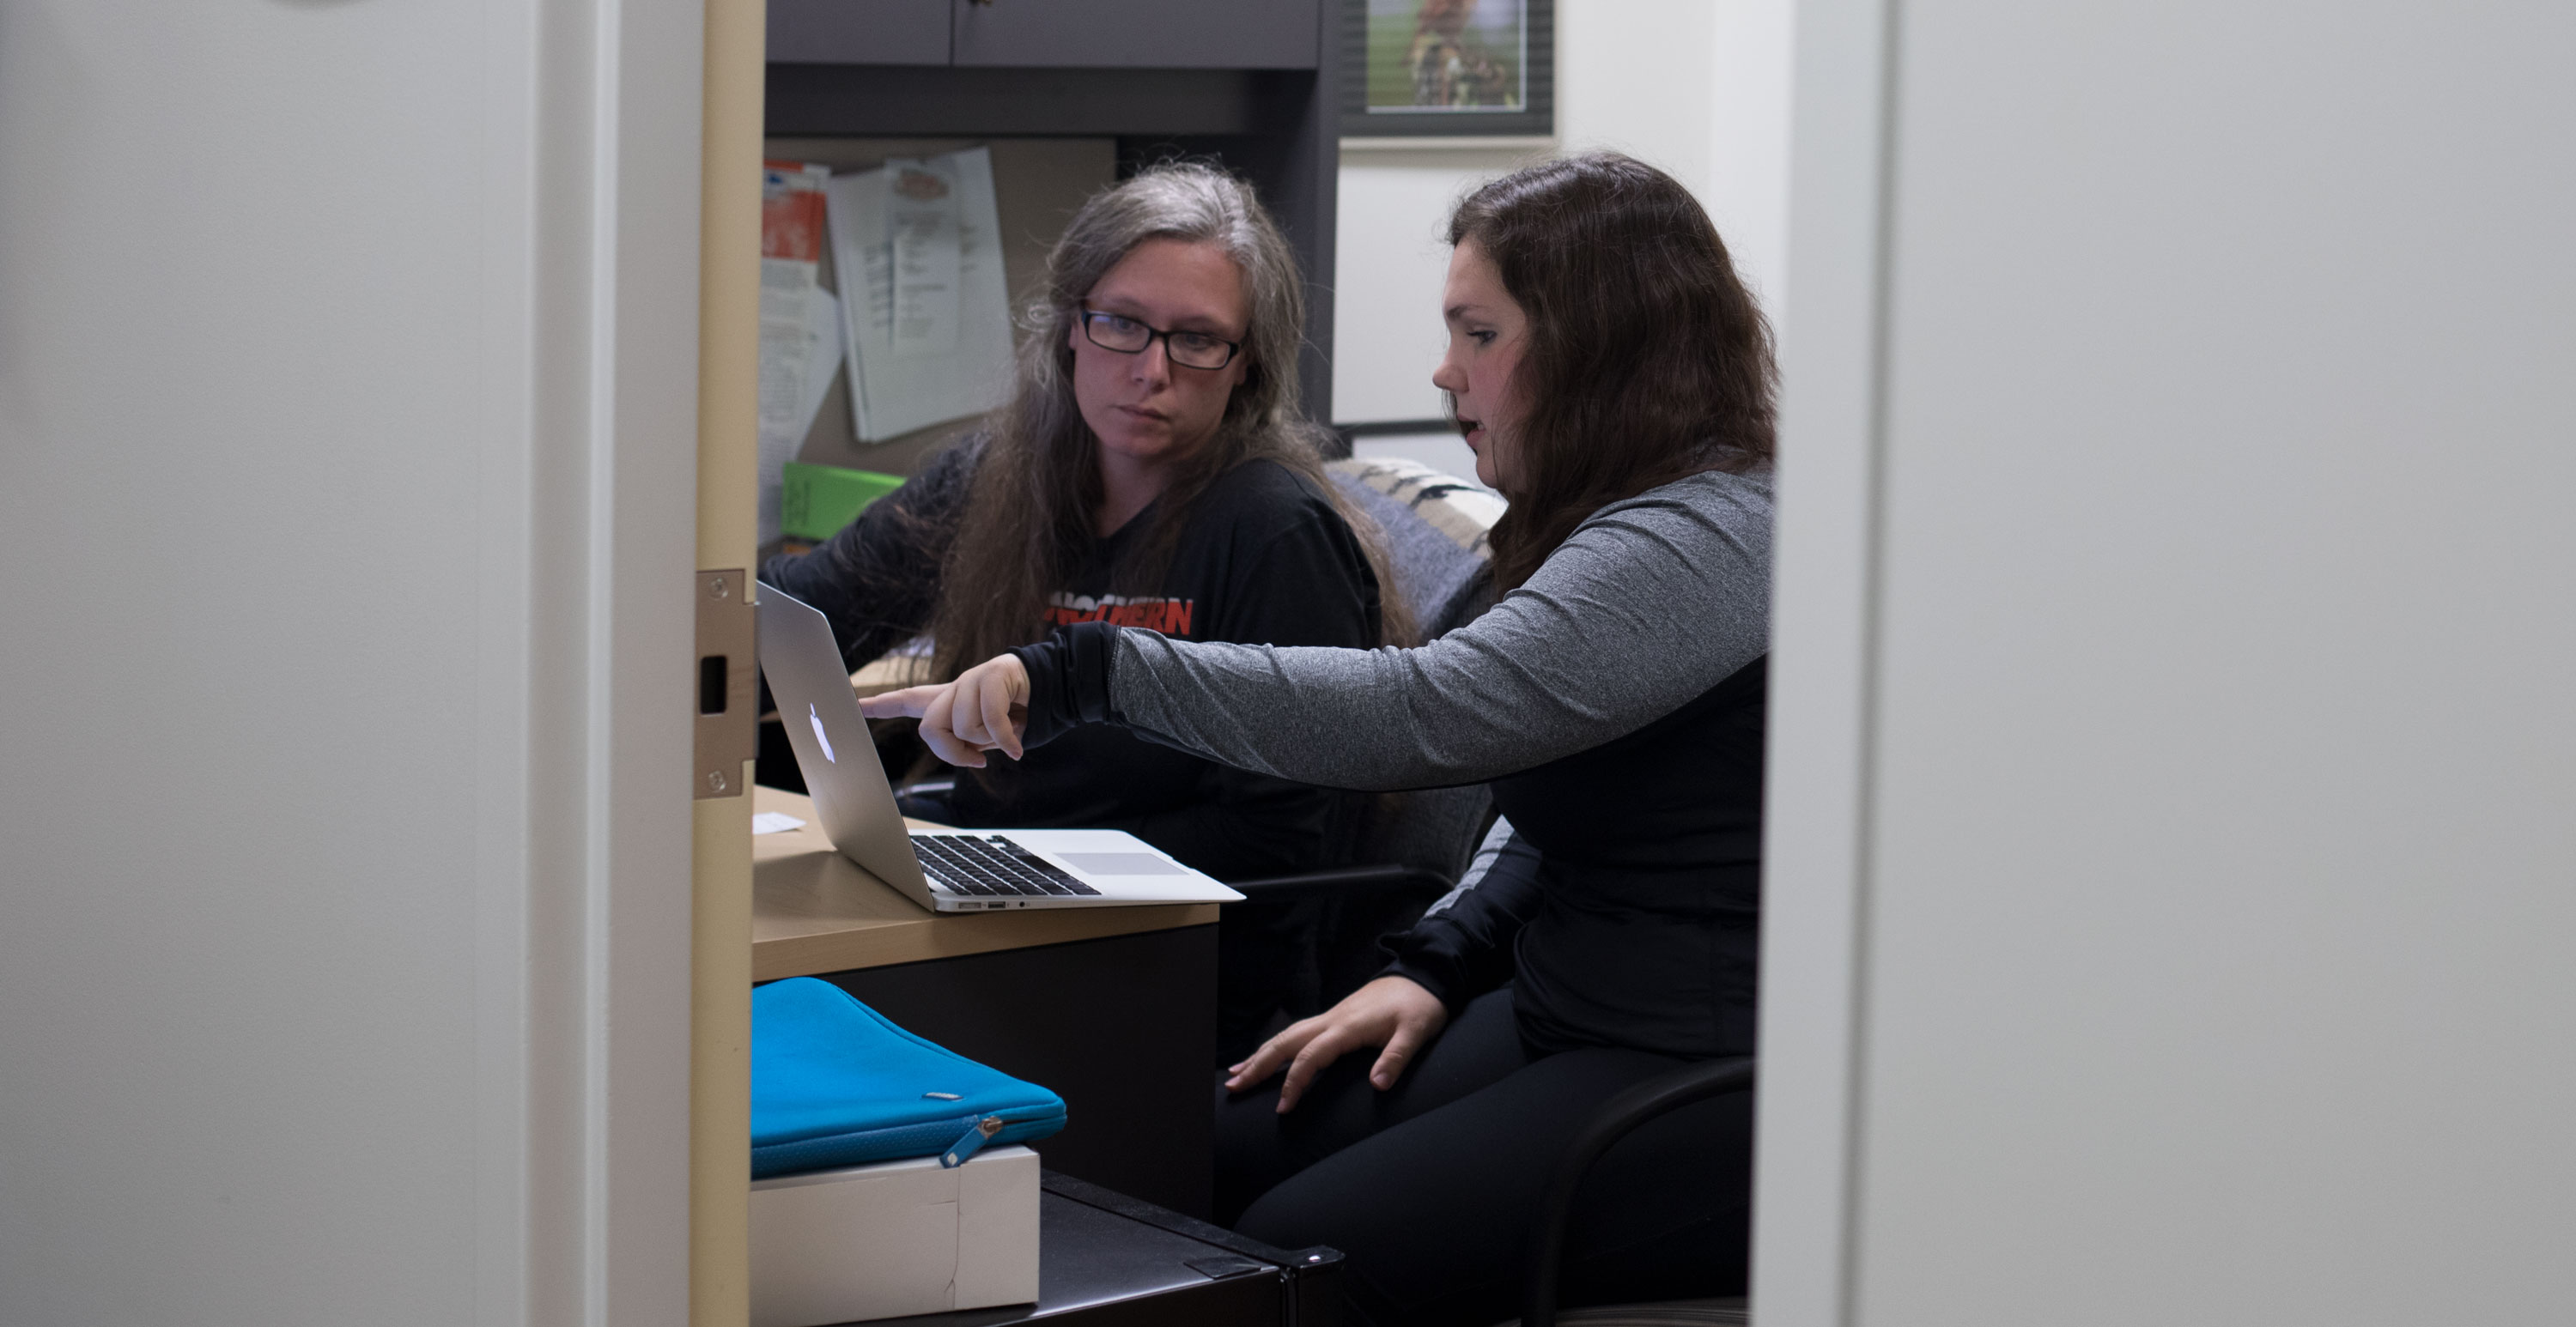 Biology professor helping student in her office.